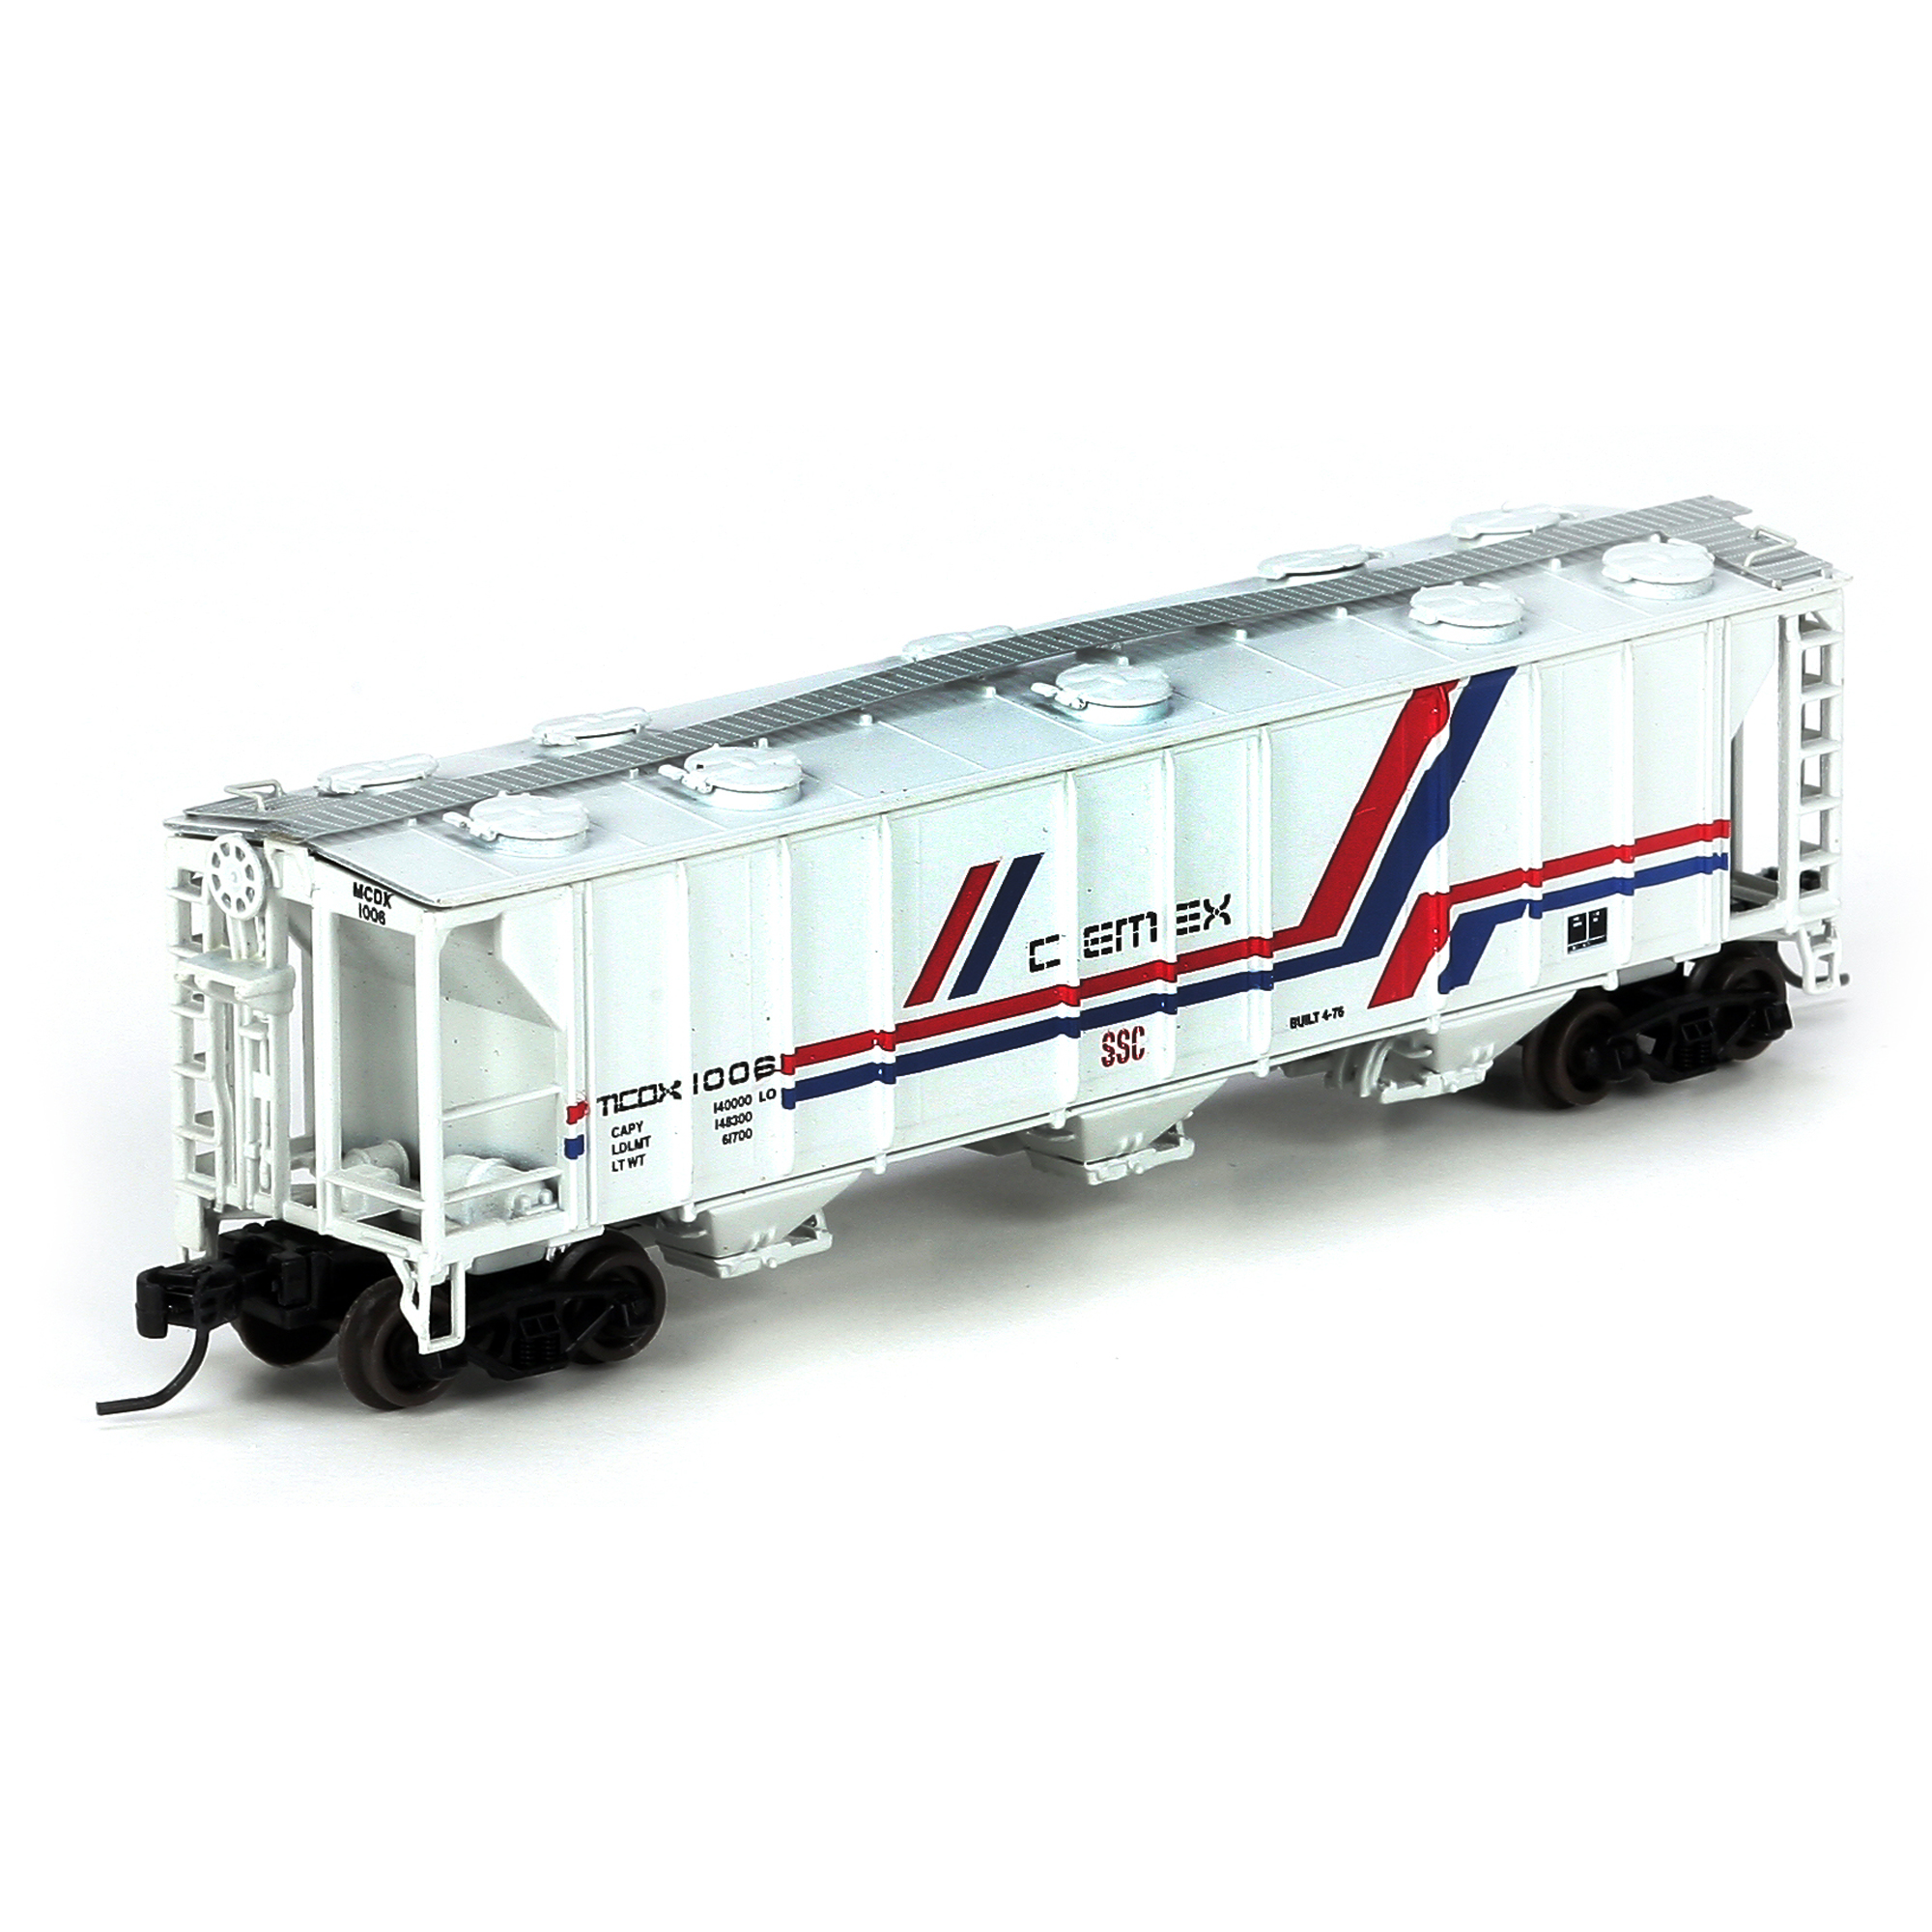 N Scale - Athearn - 23827 - Covered Hopper, 3-Bay, PS2 2893 - Cemex - 1006